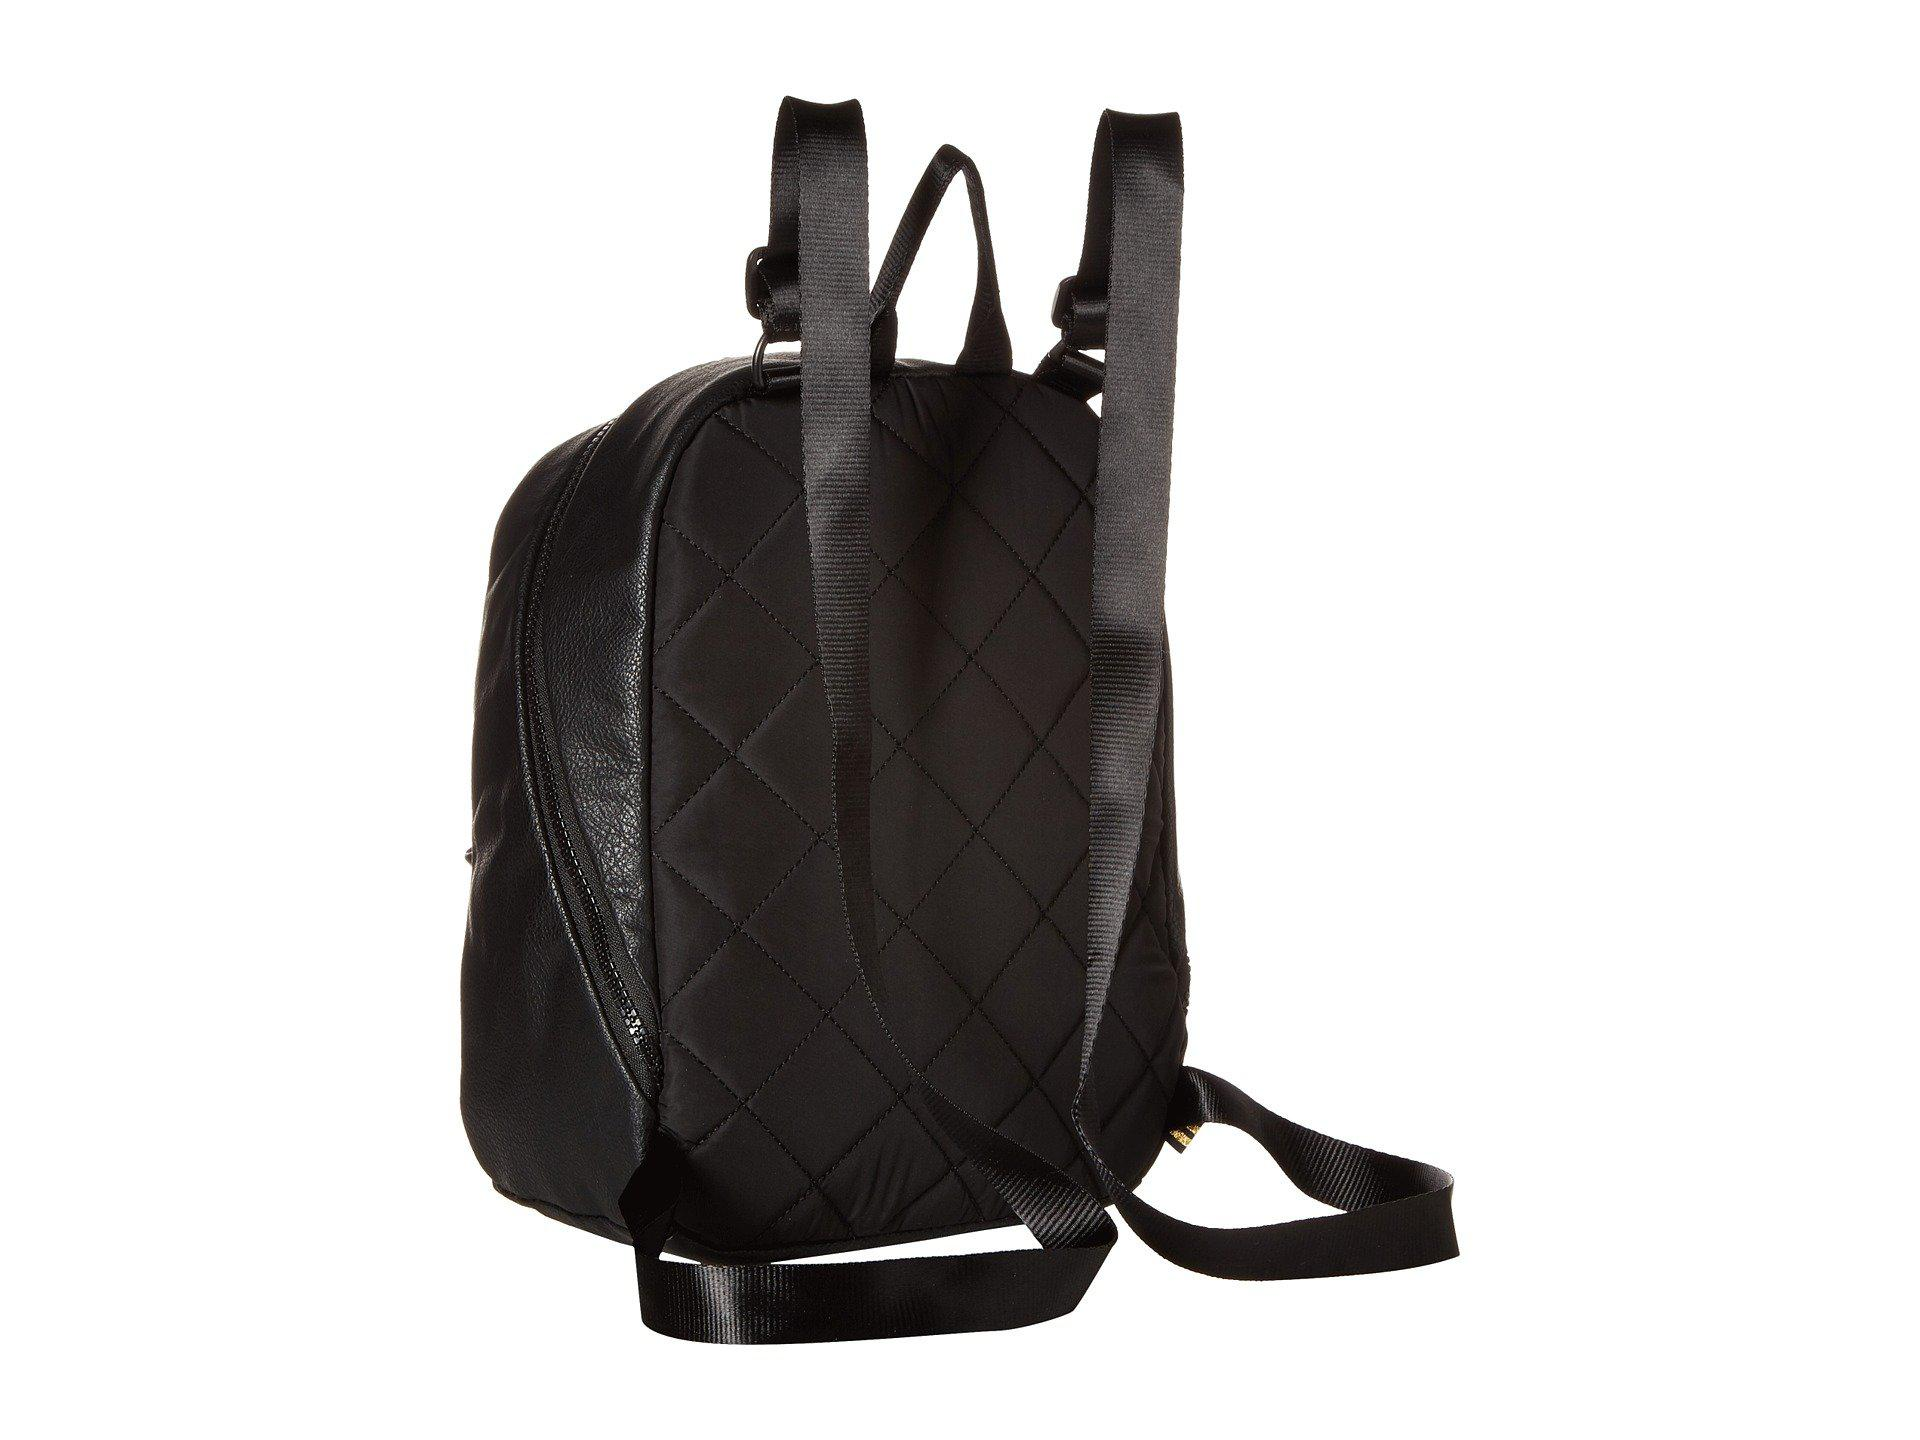 Lyst - adidas Originals National Compact Premium Backpack (black Pu ... 8e3a59bb6db07